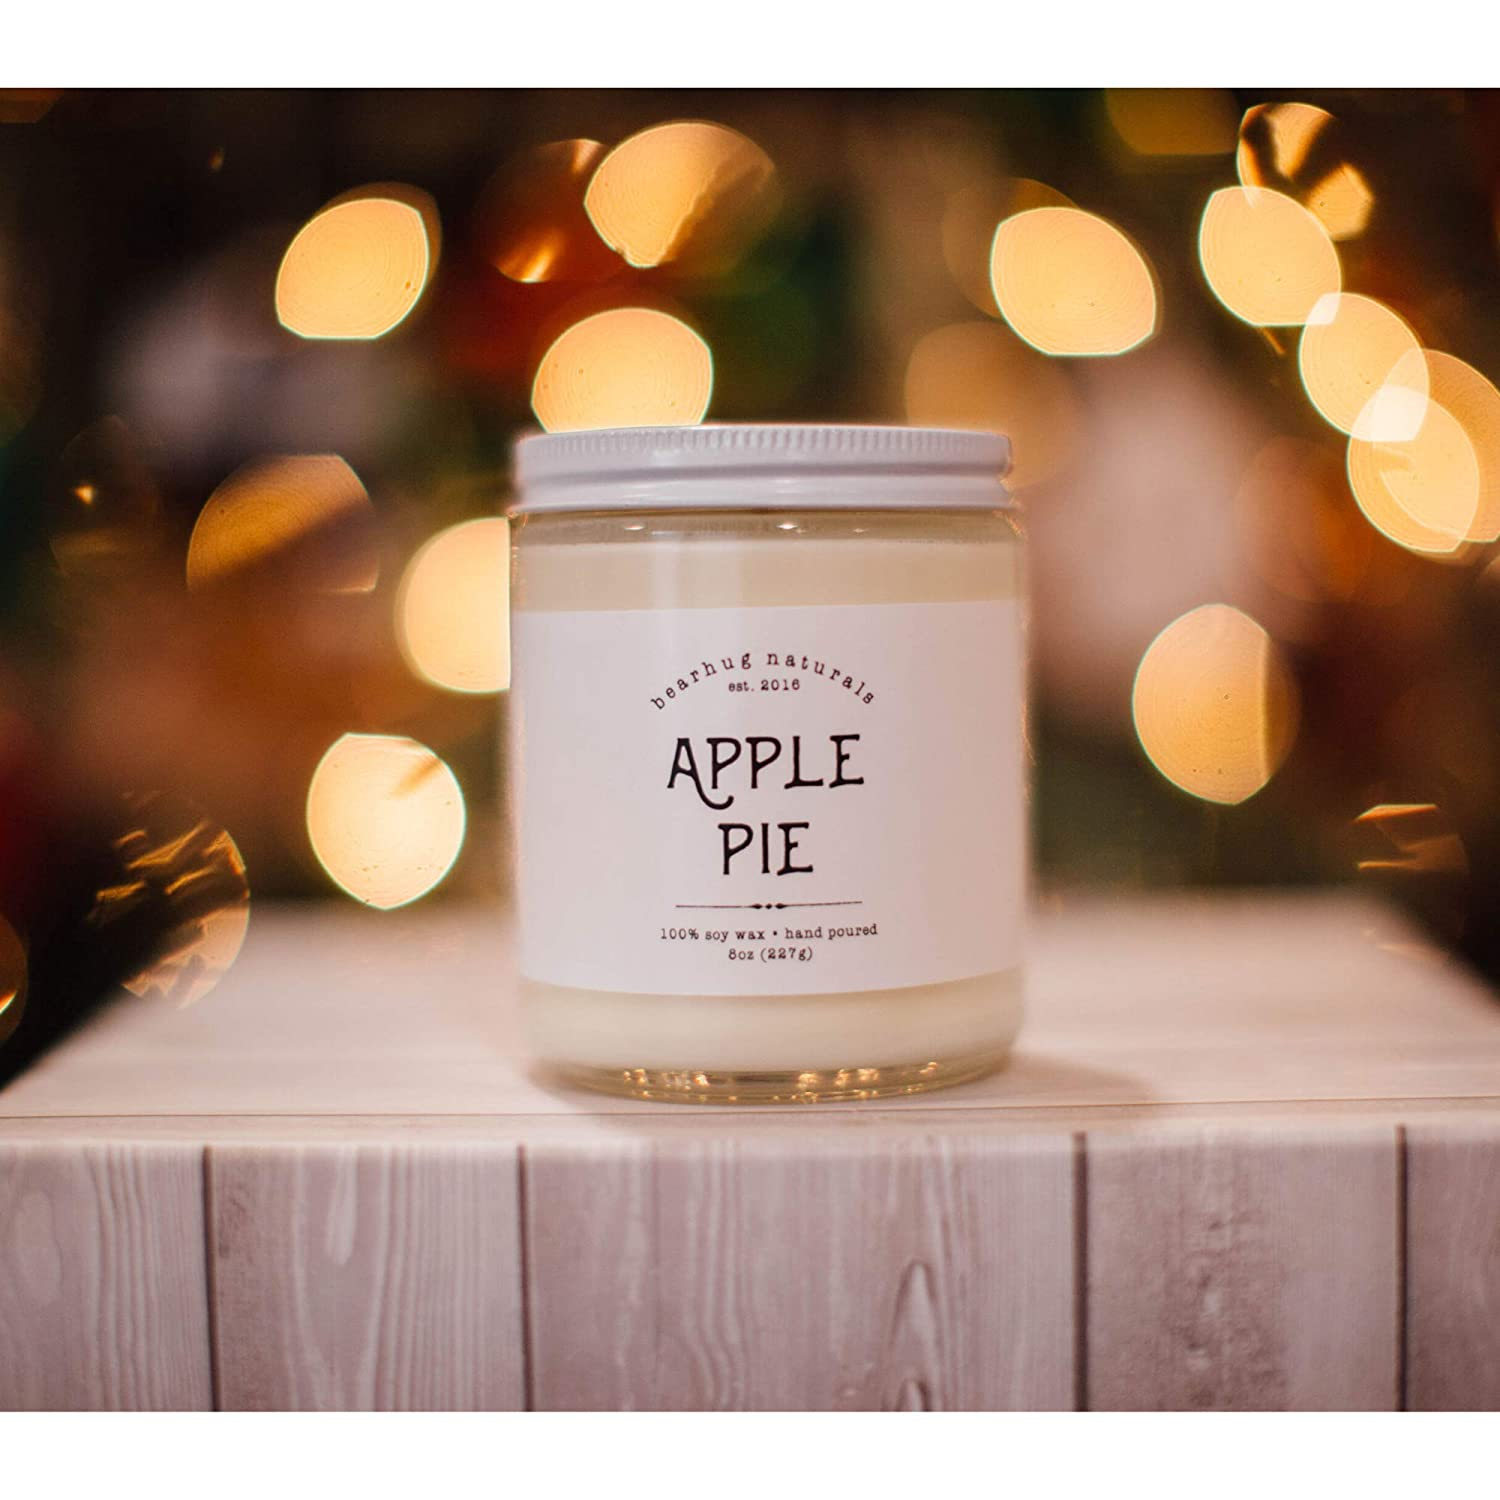 Apple Pie Hand-poured Soy Candle Fall Winter Holiday Scent Vegan Eco-friendly